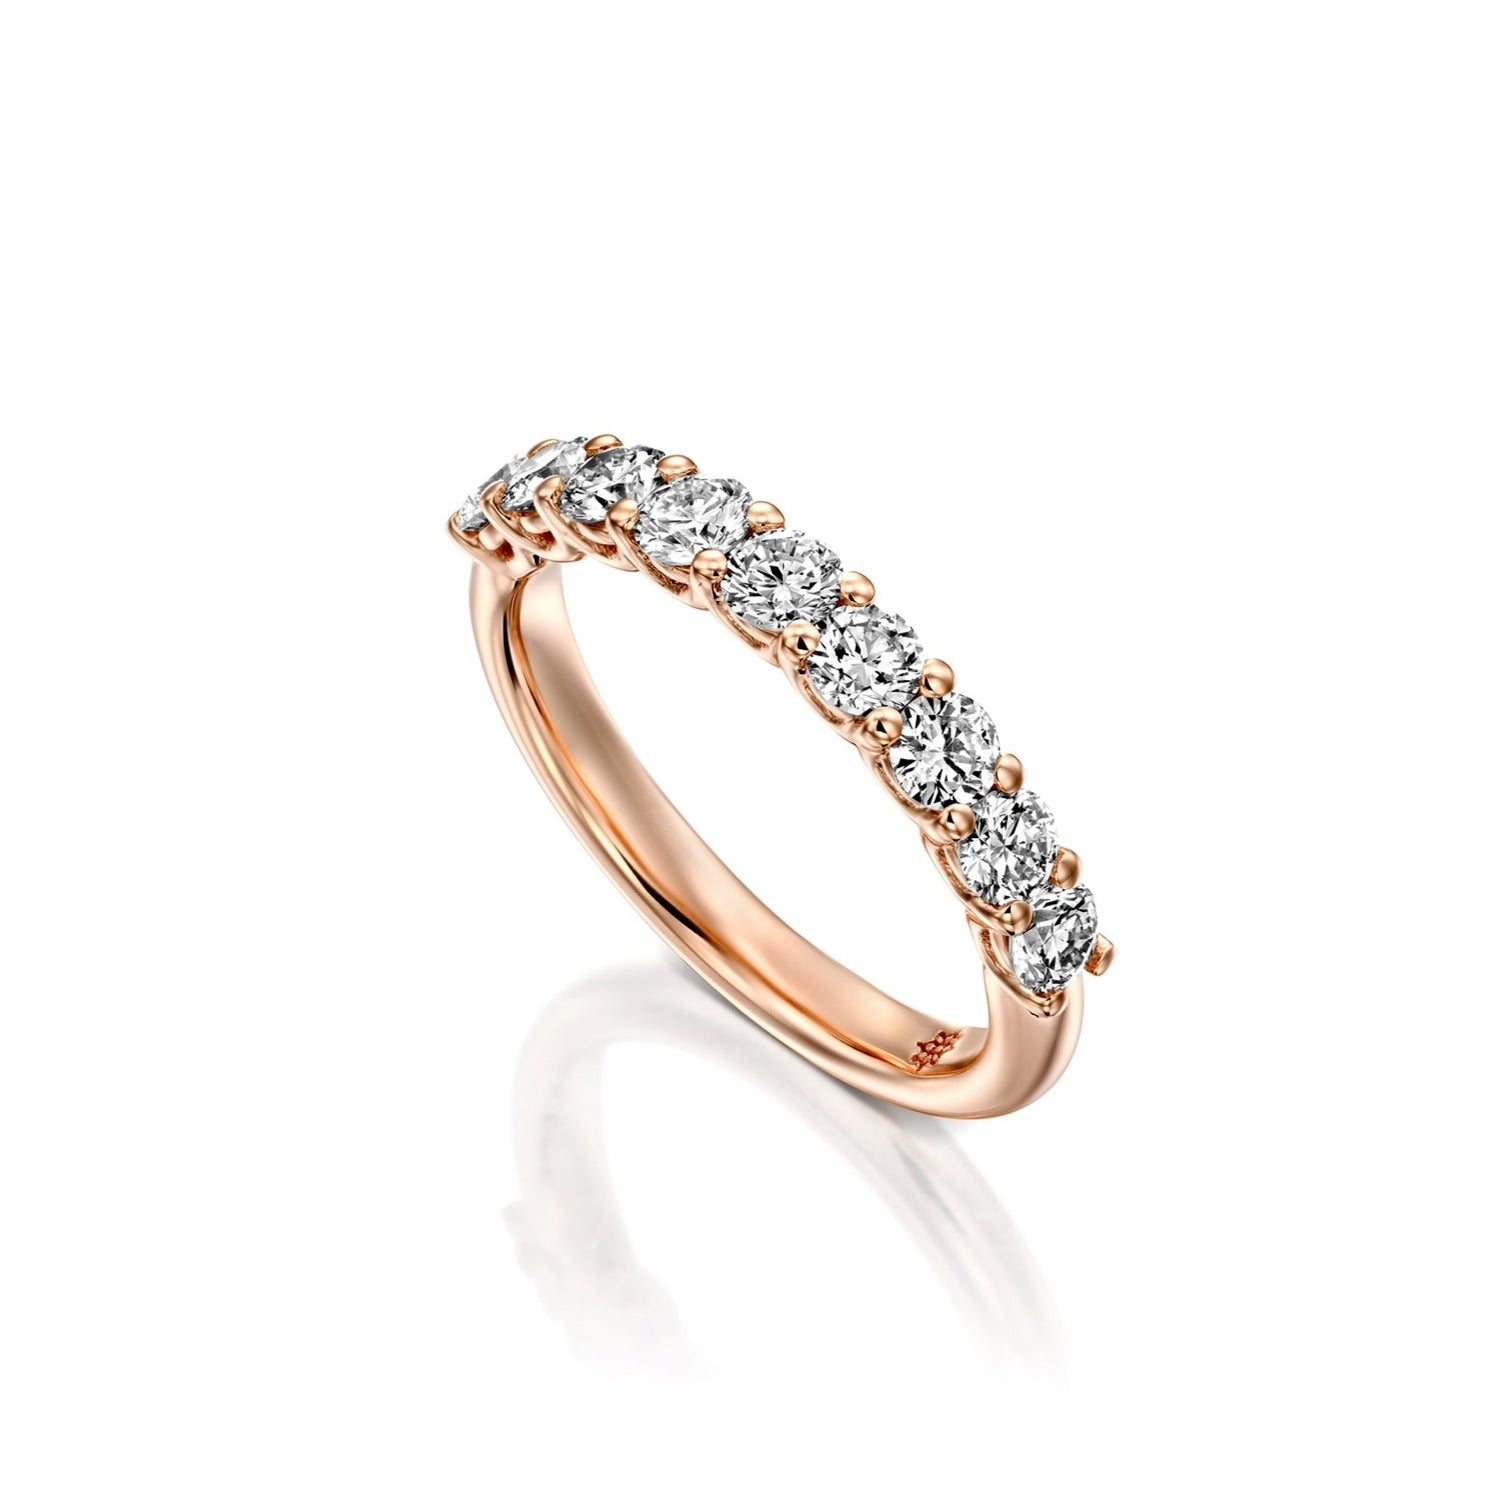 Half Diamonds ring